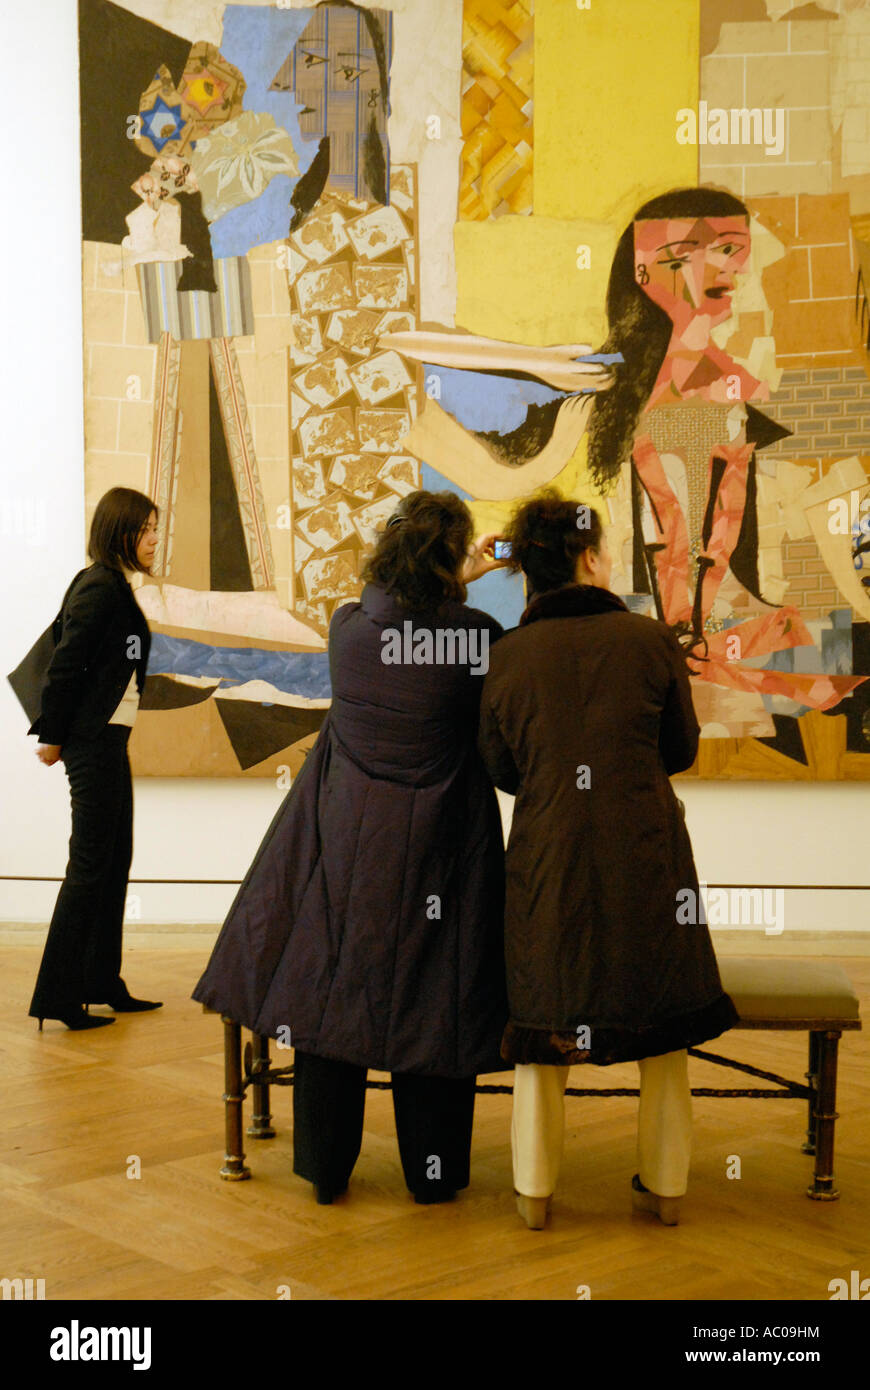 Viewing paintings at Museum in Paris. Stock Photo